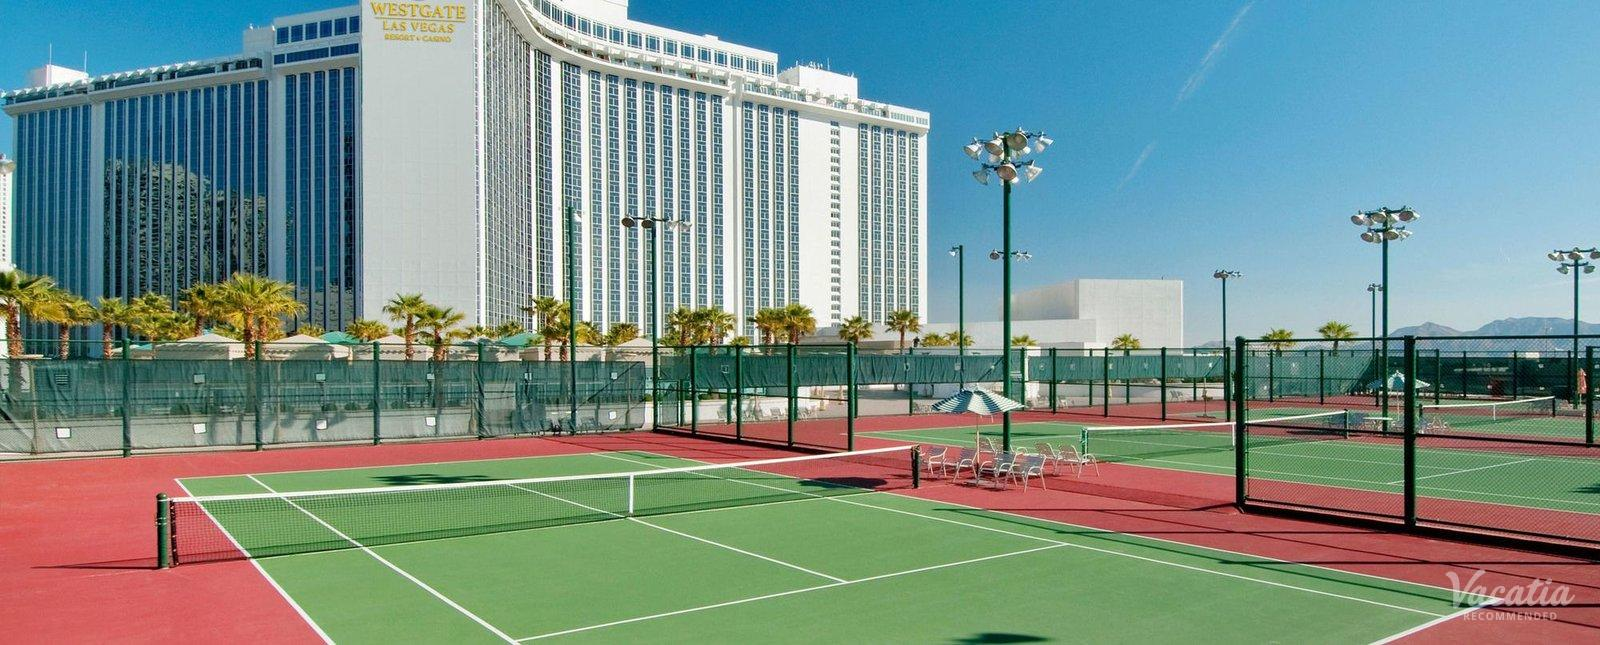 Westgate Las Vegas Resort Tennis Courts